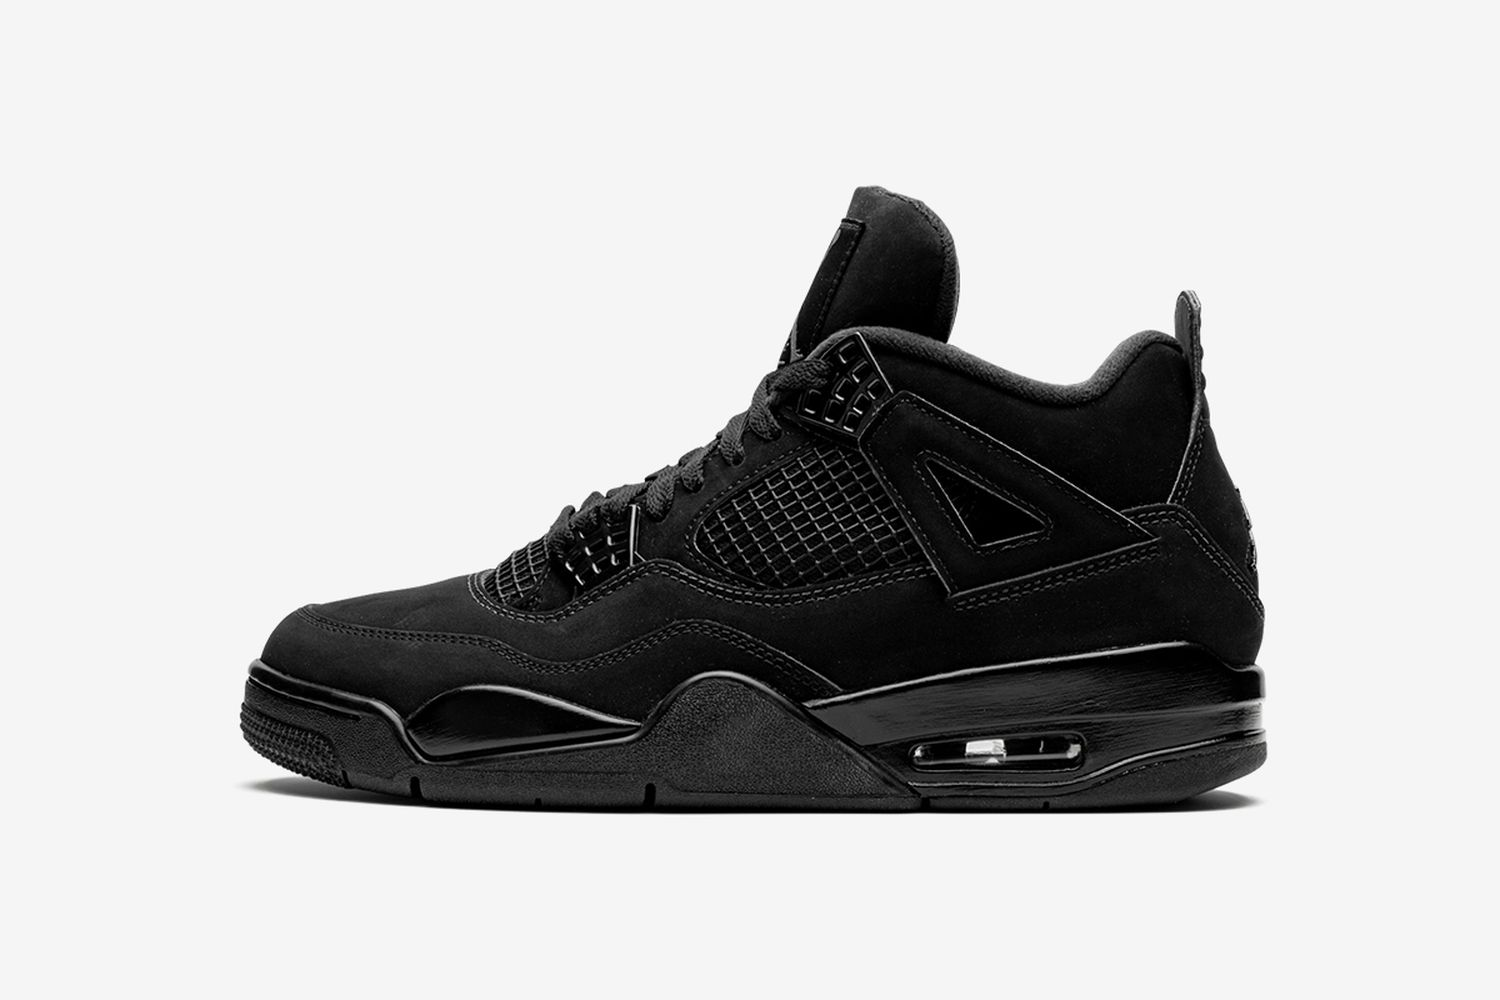 Air Jordan 4 Retro 'Black Cat 2020'